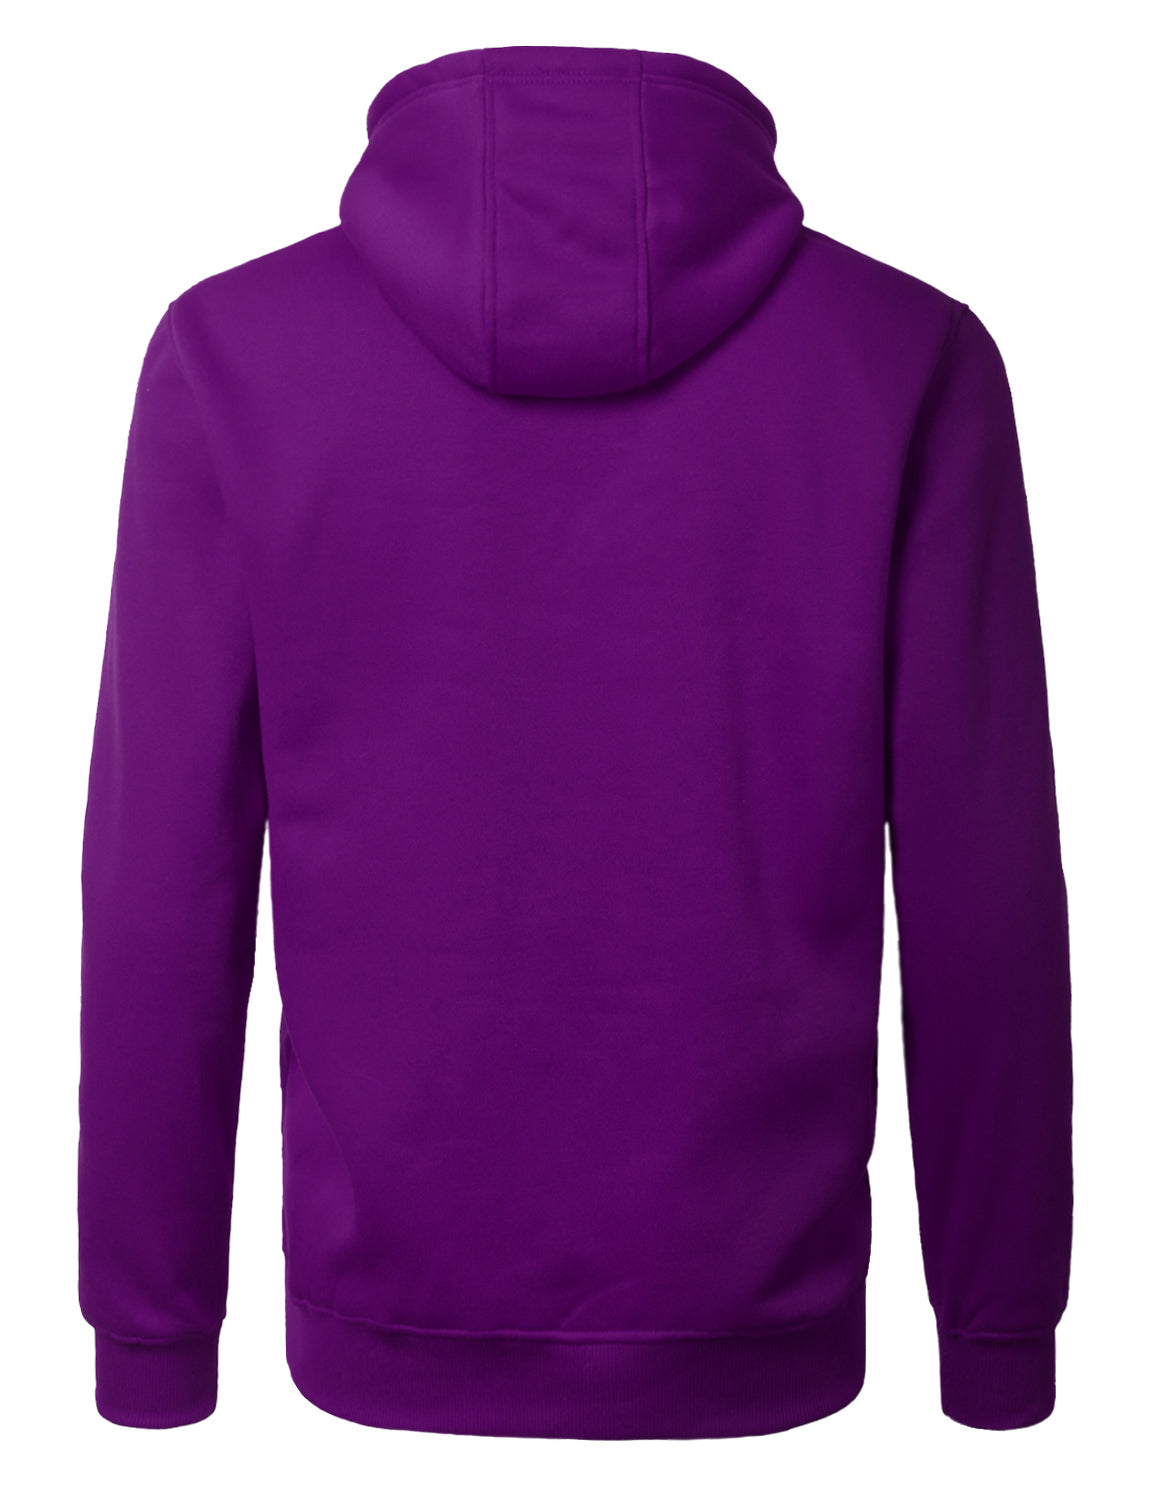 PURPLE Basic Pullover Fleece Hoodie - URBANCREWS